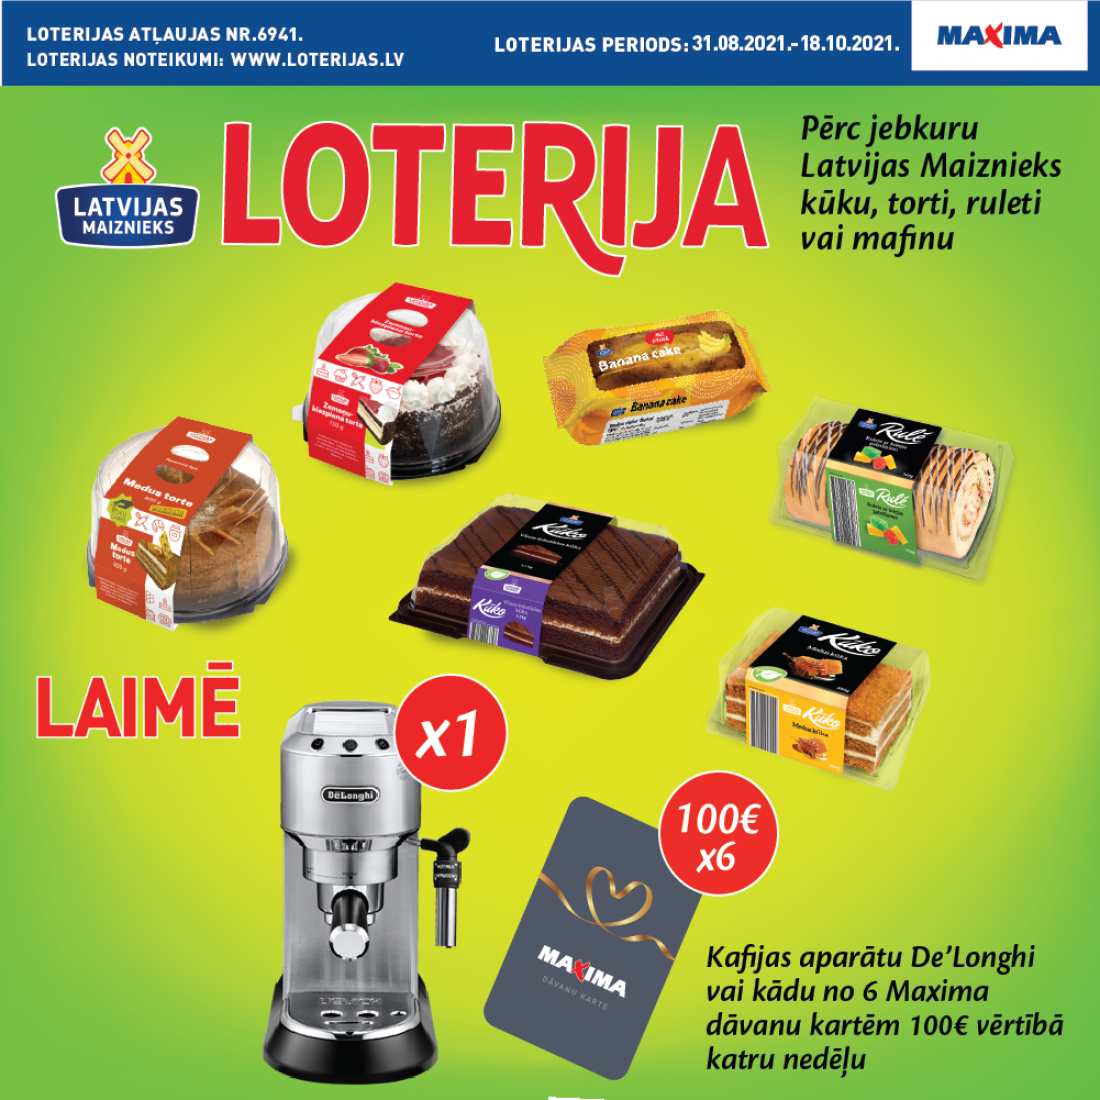 BUY CAKES IN MAXIMA STORE AND WIN!